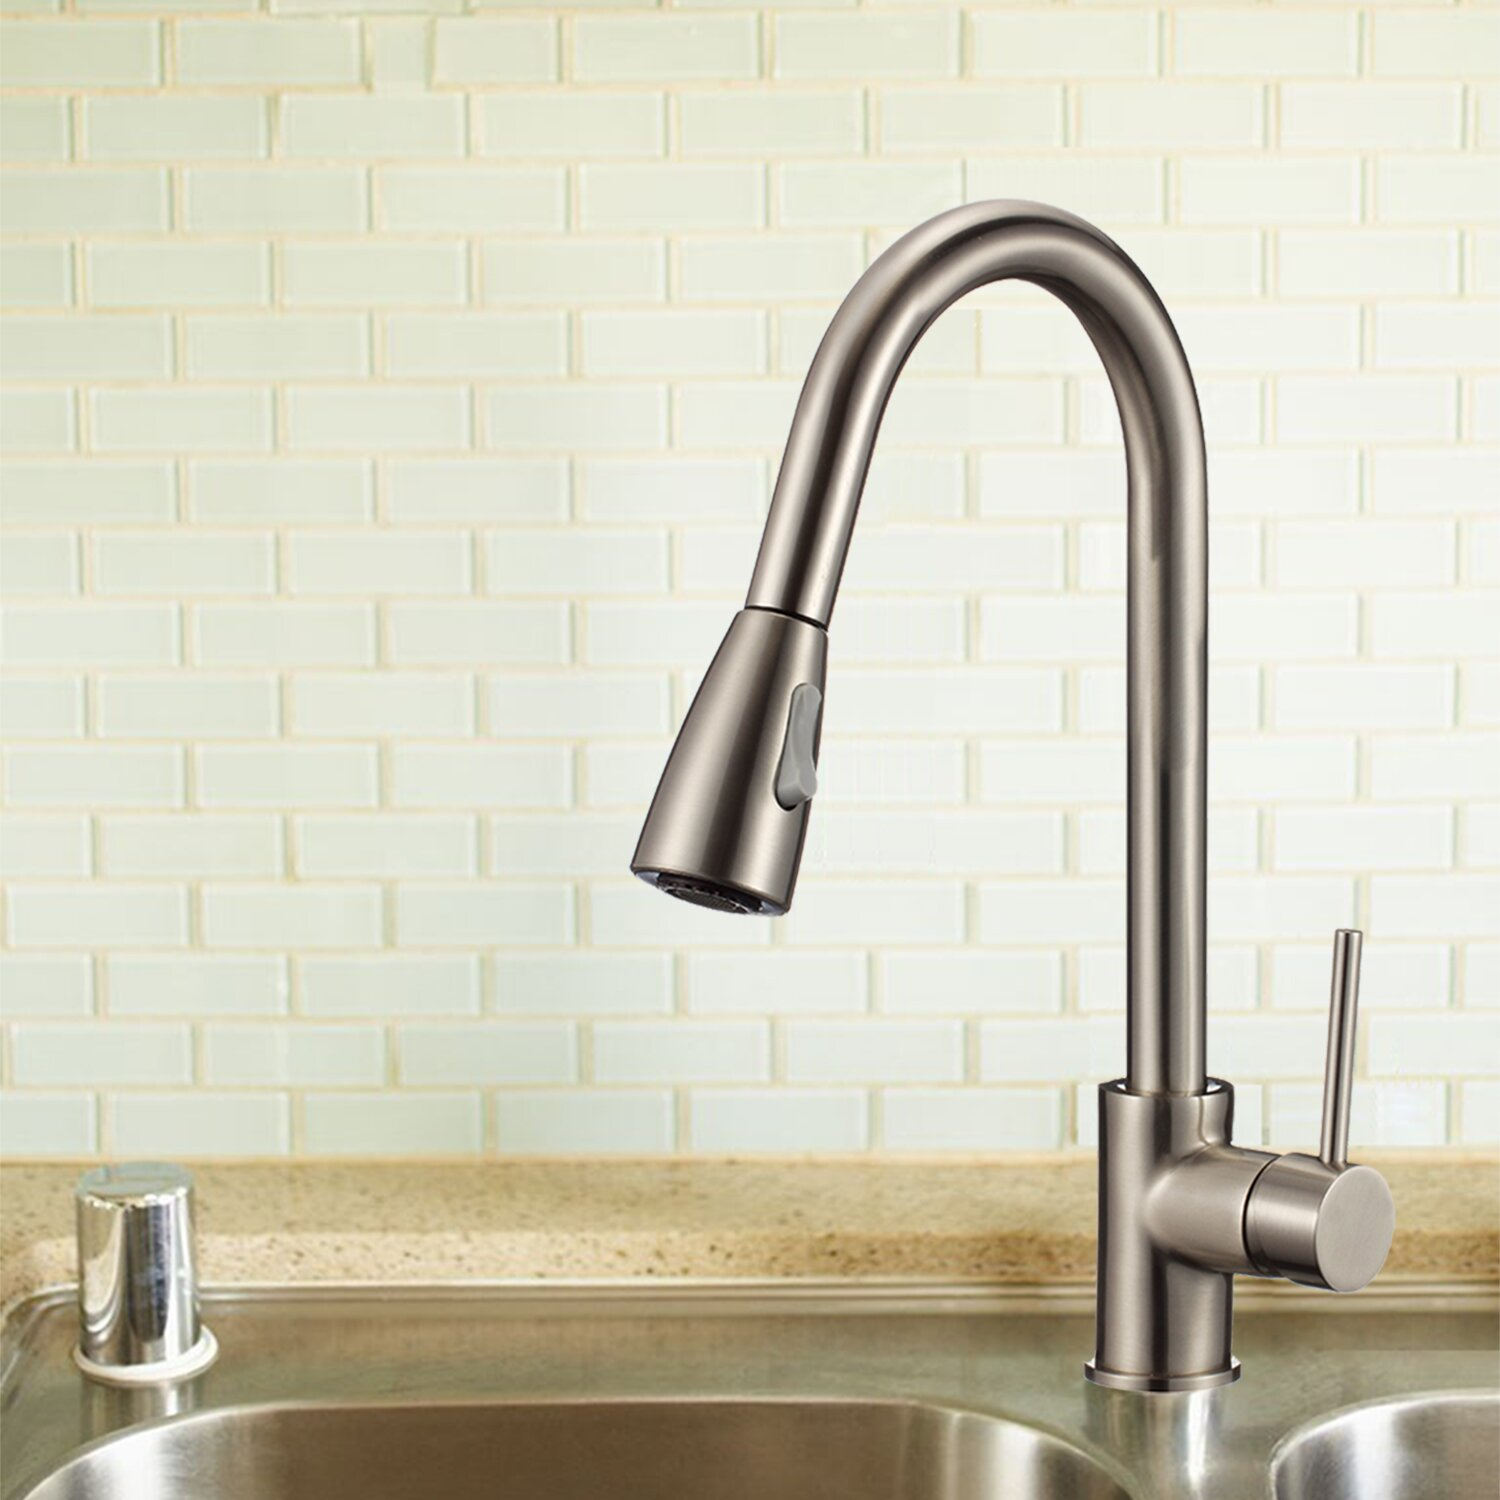 upscale designs by ema single handle deck mounted kitchen upscale designs by ema single handle kitchen faucet with